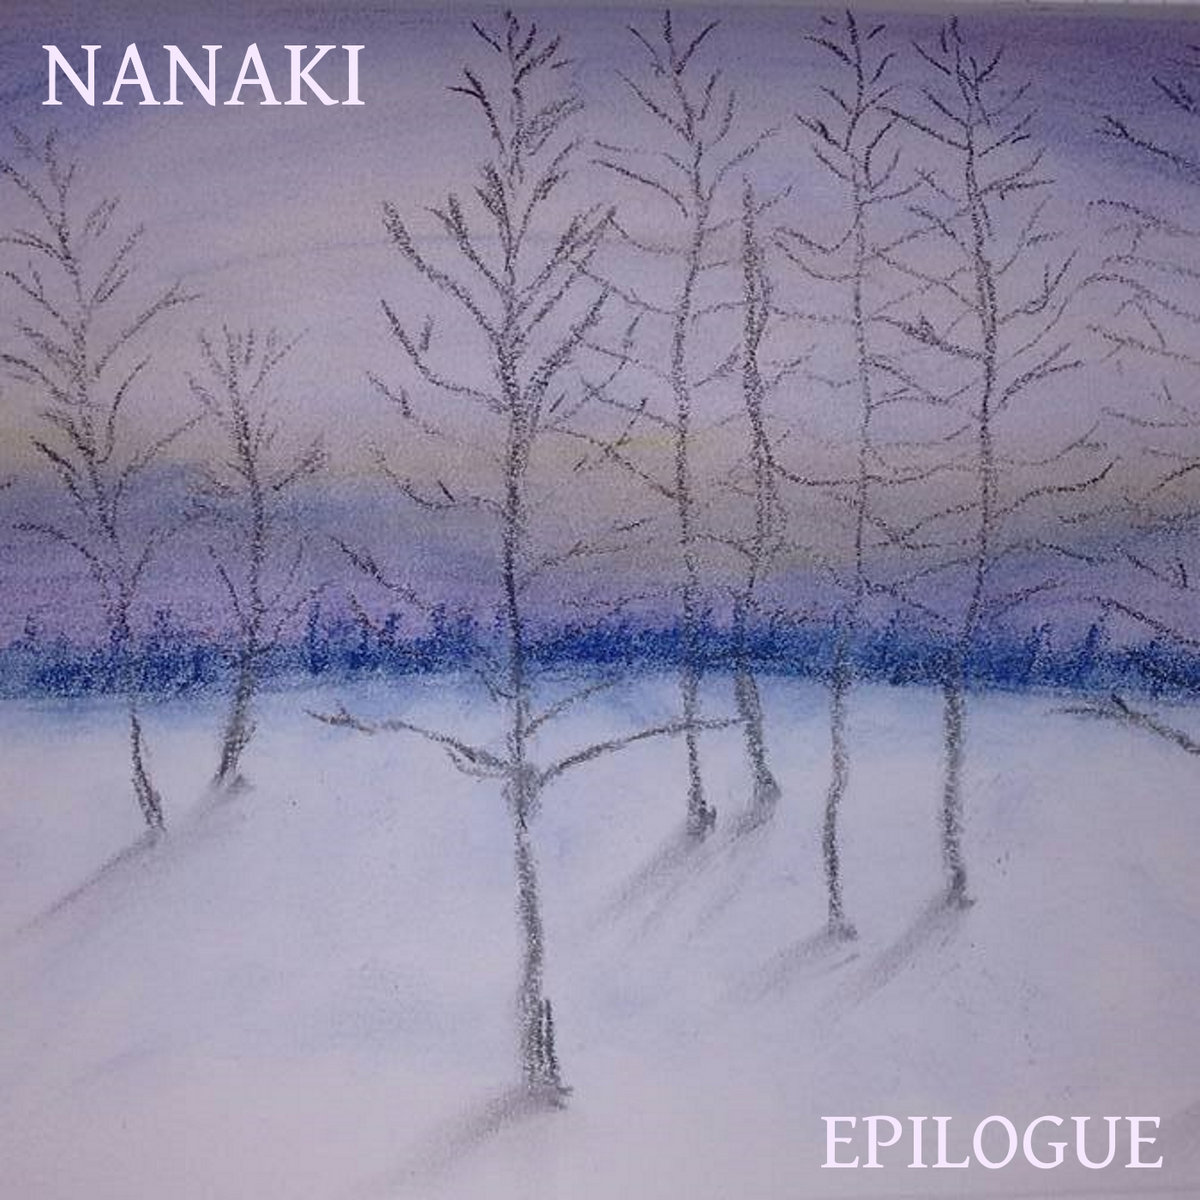 Nanaki artwork